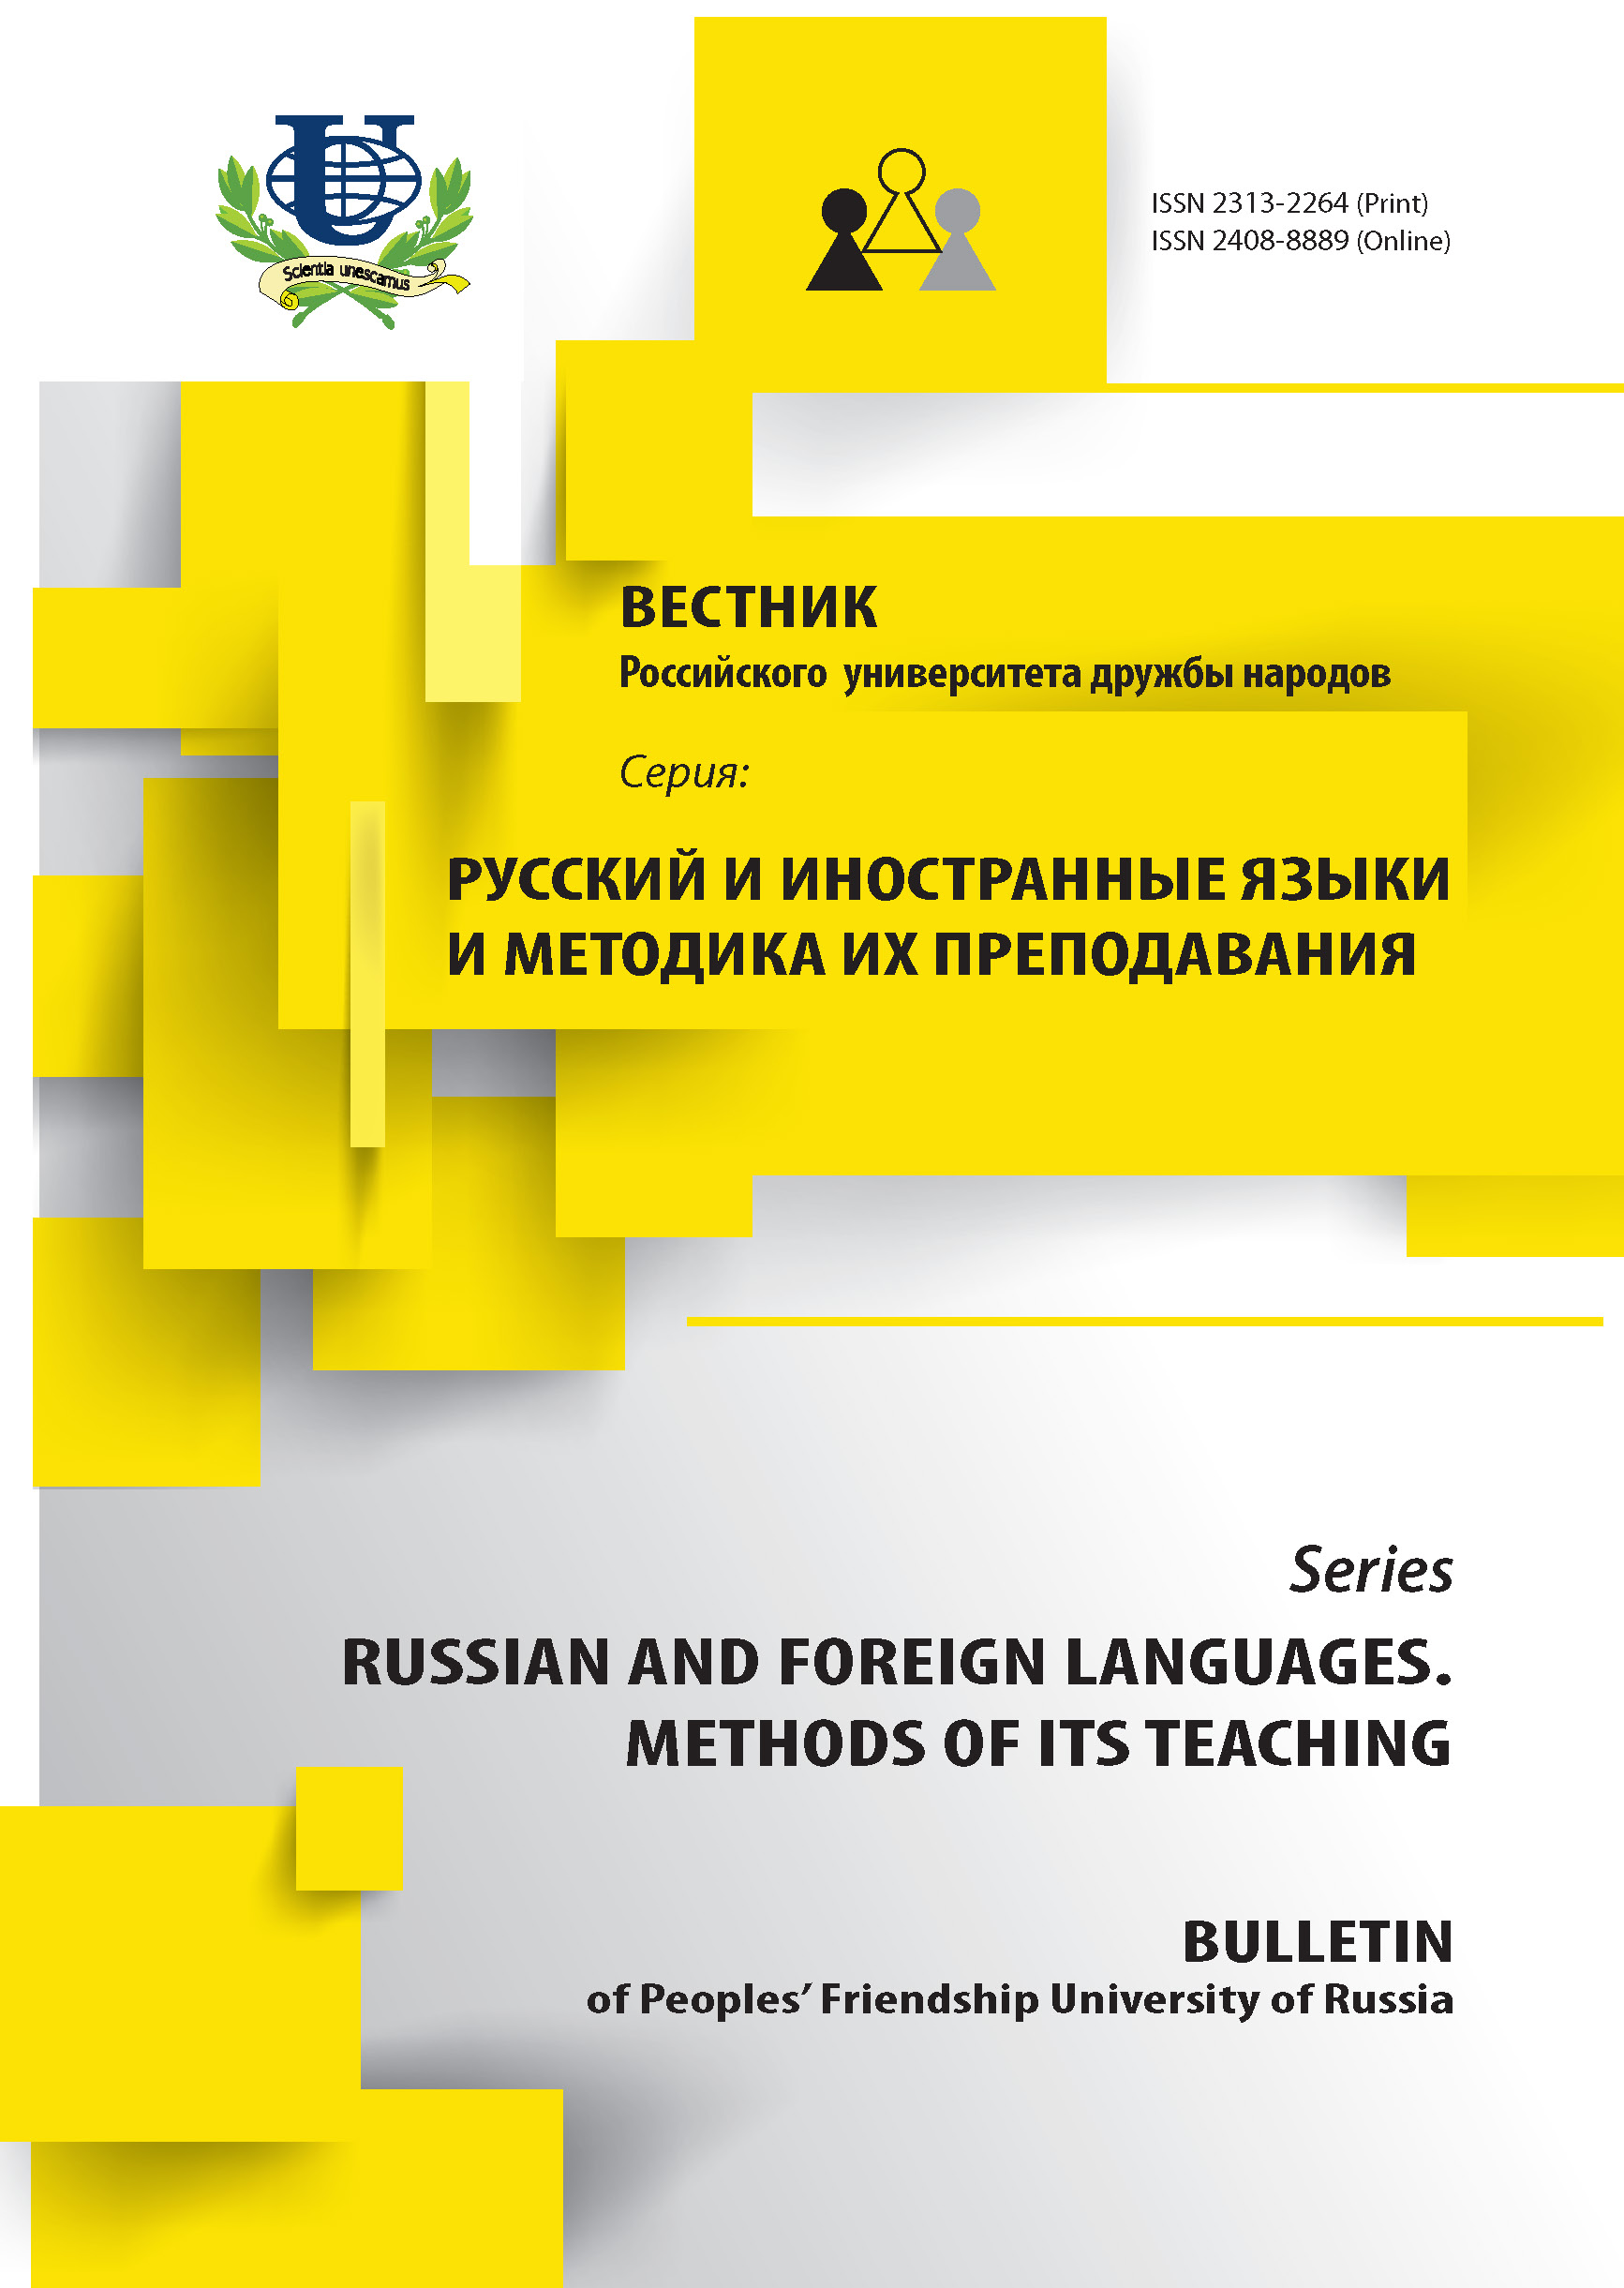 For that the teacher of russian language